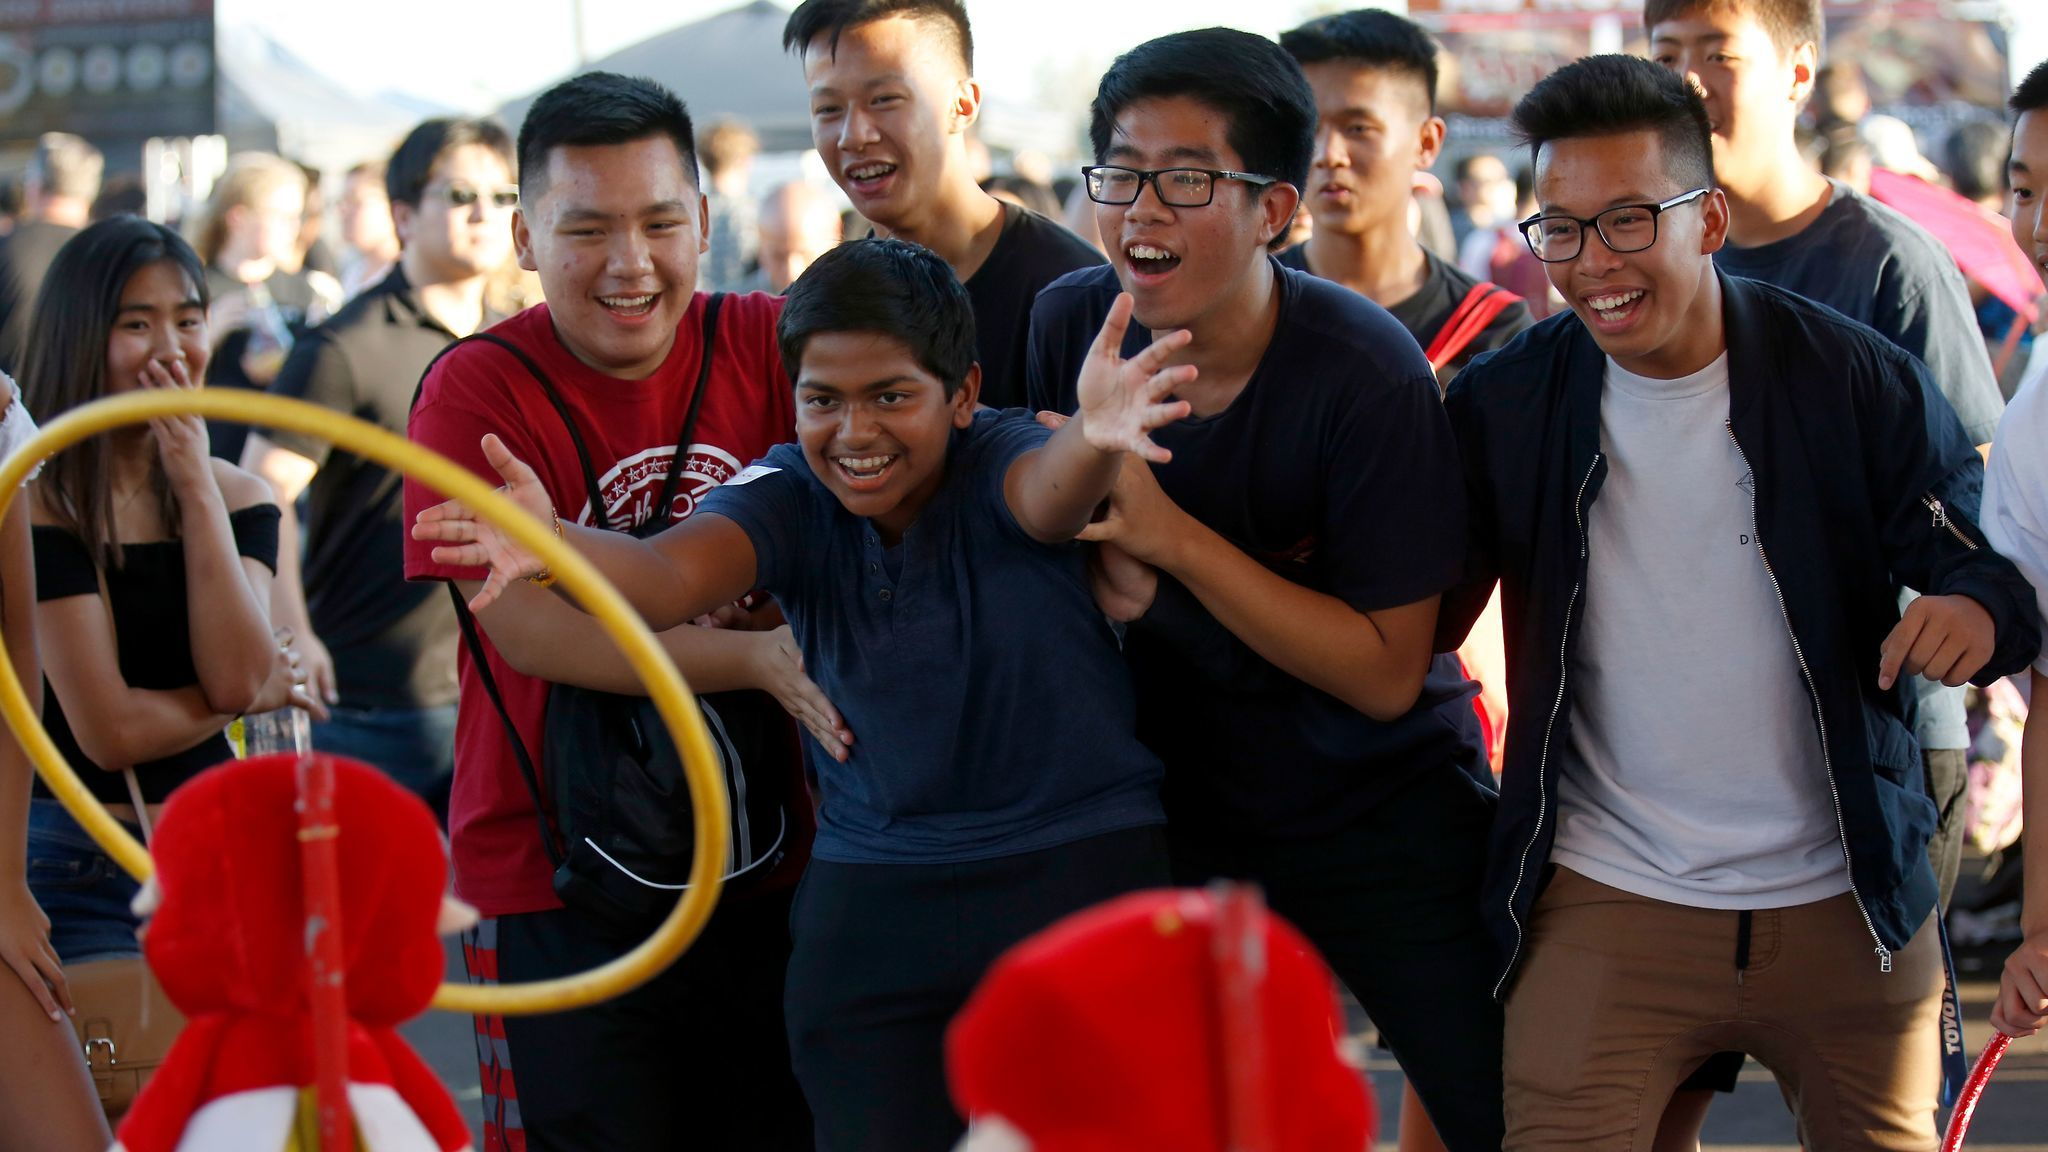 Roshan Kannan, 15, center, of Arcadia, is surrounded by friends as he tosses a ring in hopes of winning a stuffed animal at the 626 Night Market in Arcadia.